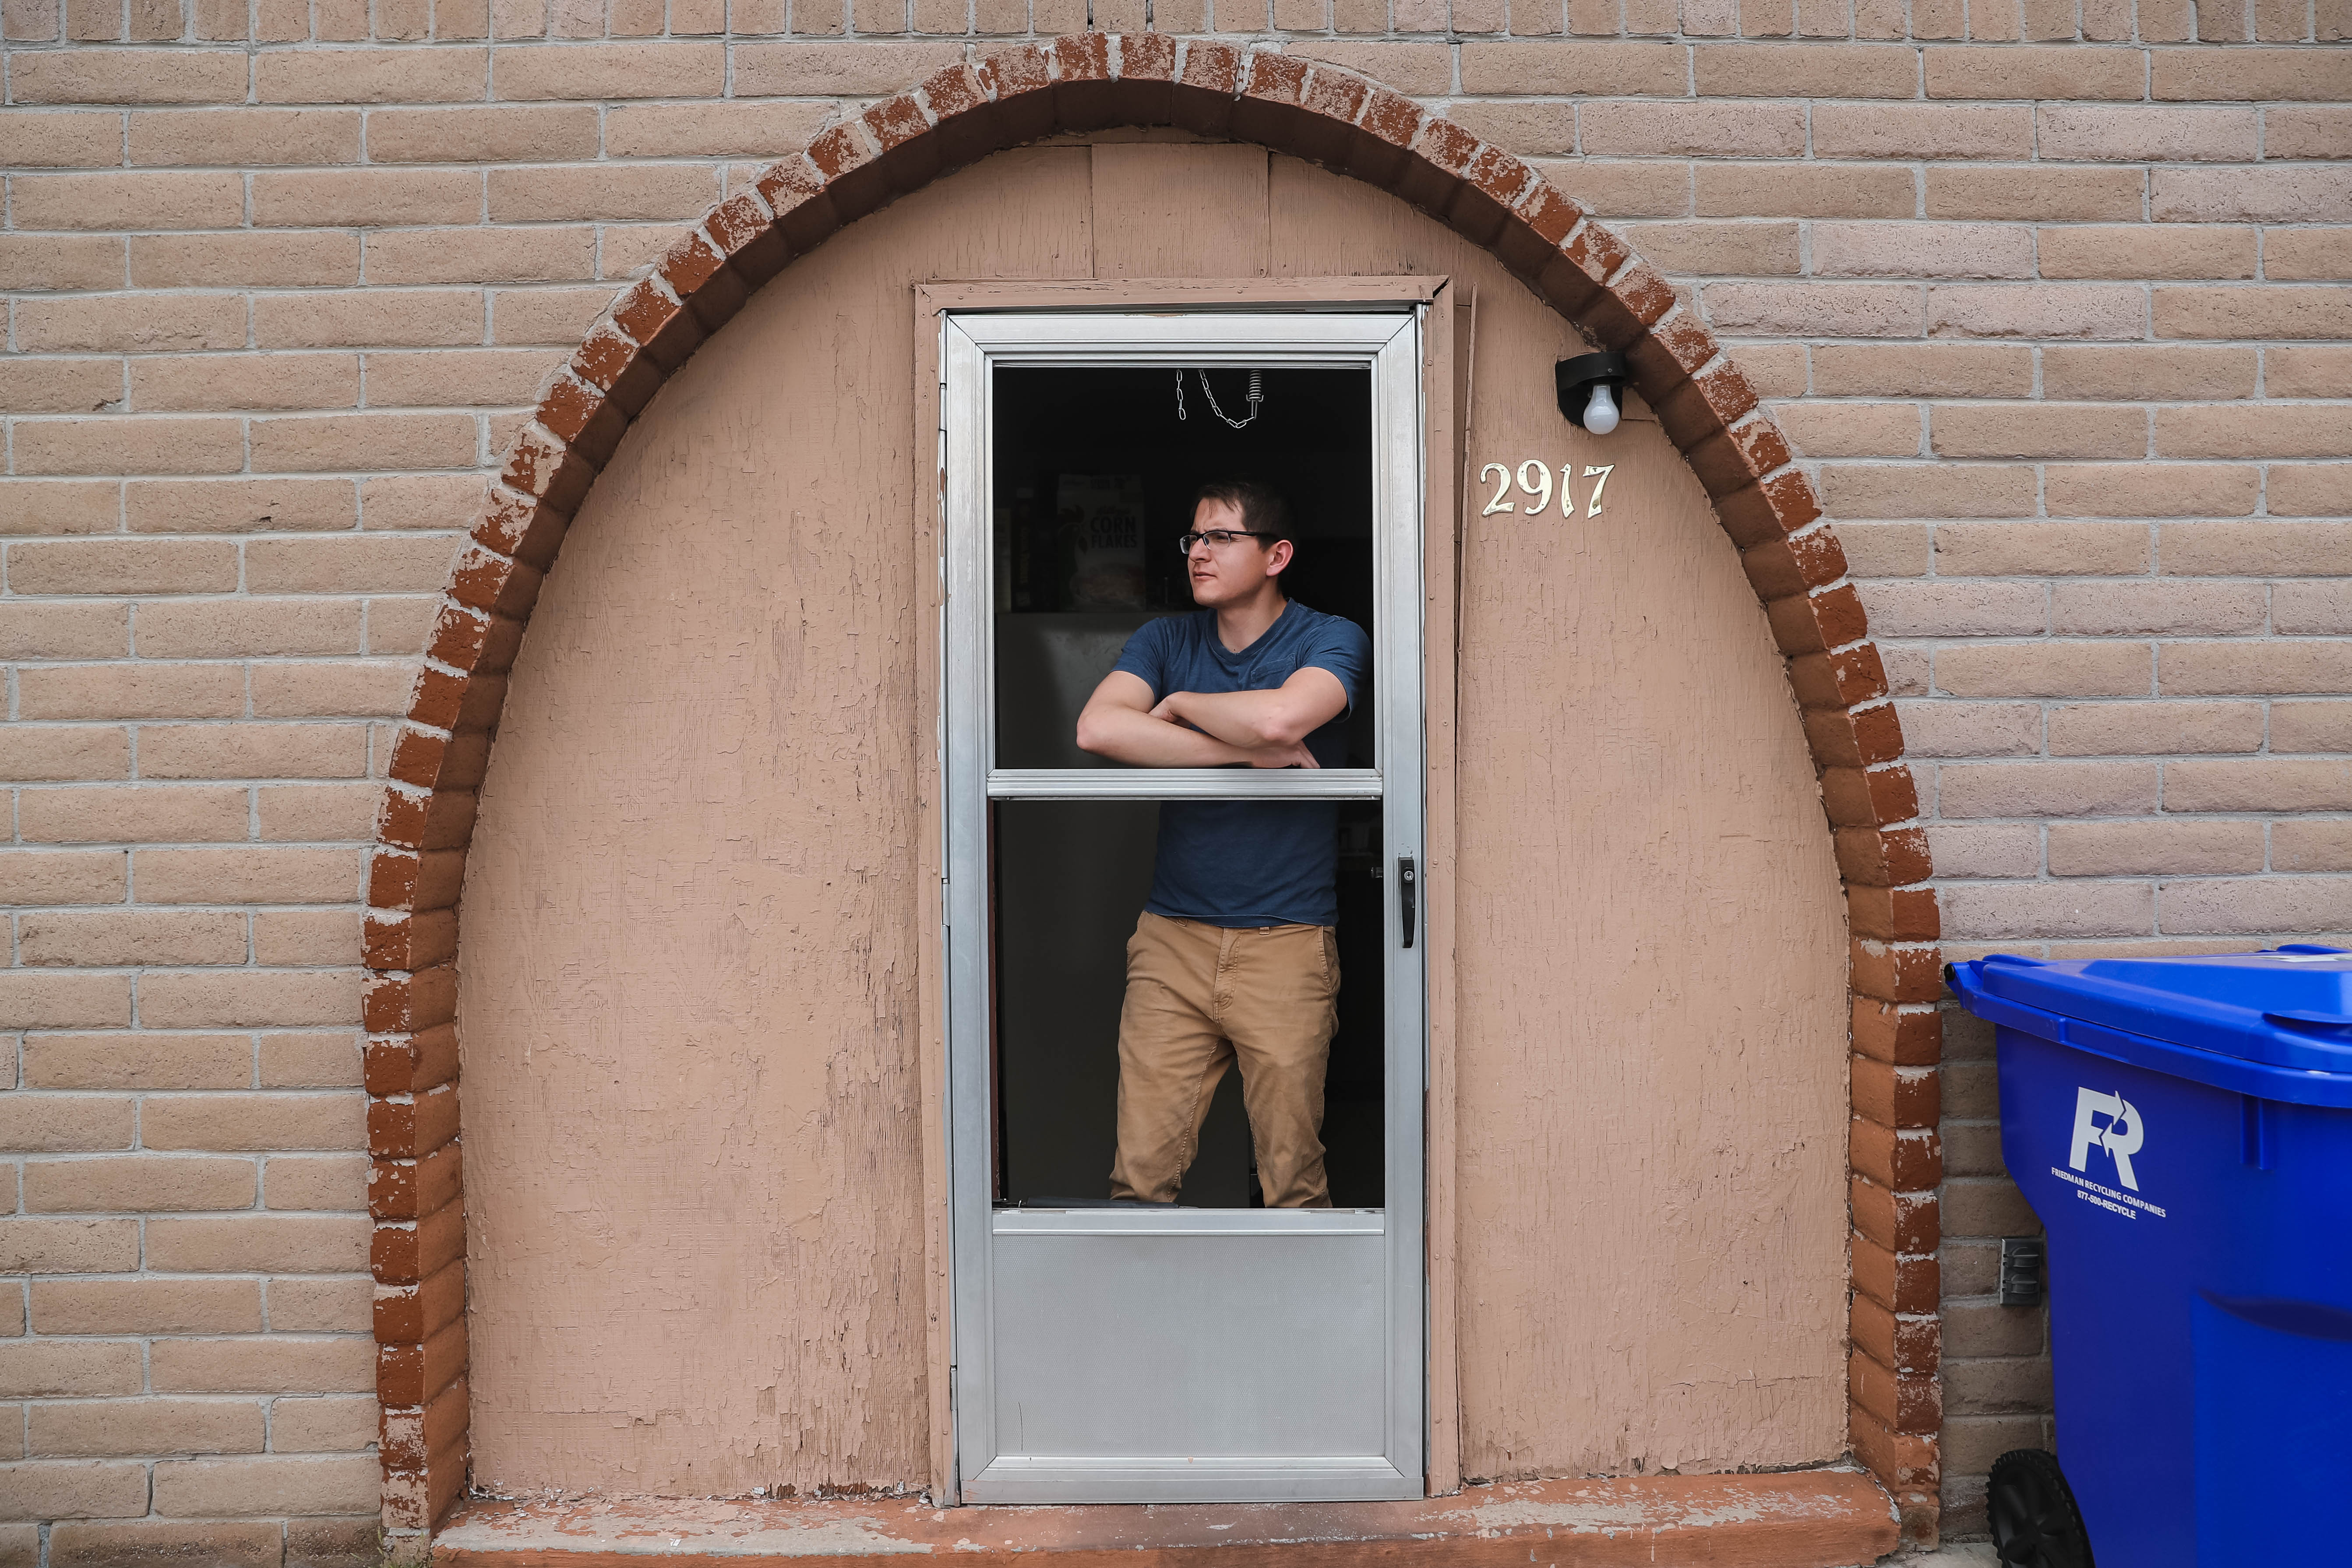 New Mexico State aerospace engineering major Martin Andazola looks out from his porch on Friday, April 3, 2020, during what would have been class hours before school was canceled due to Coronavirus concerns in Las Cruces.